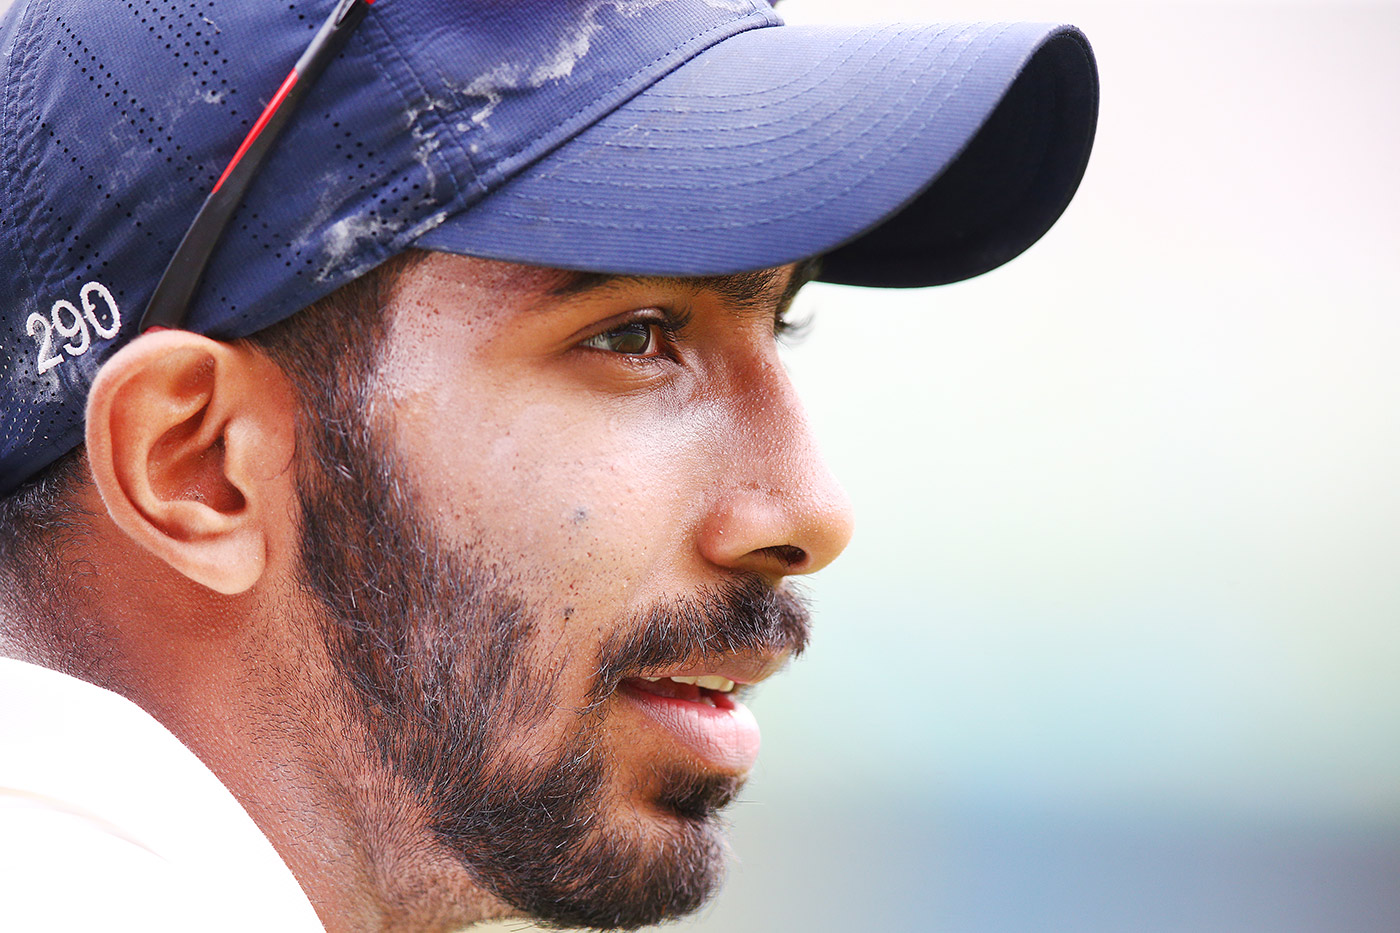 Jasprit Bumrah close-up